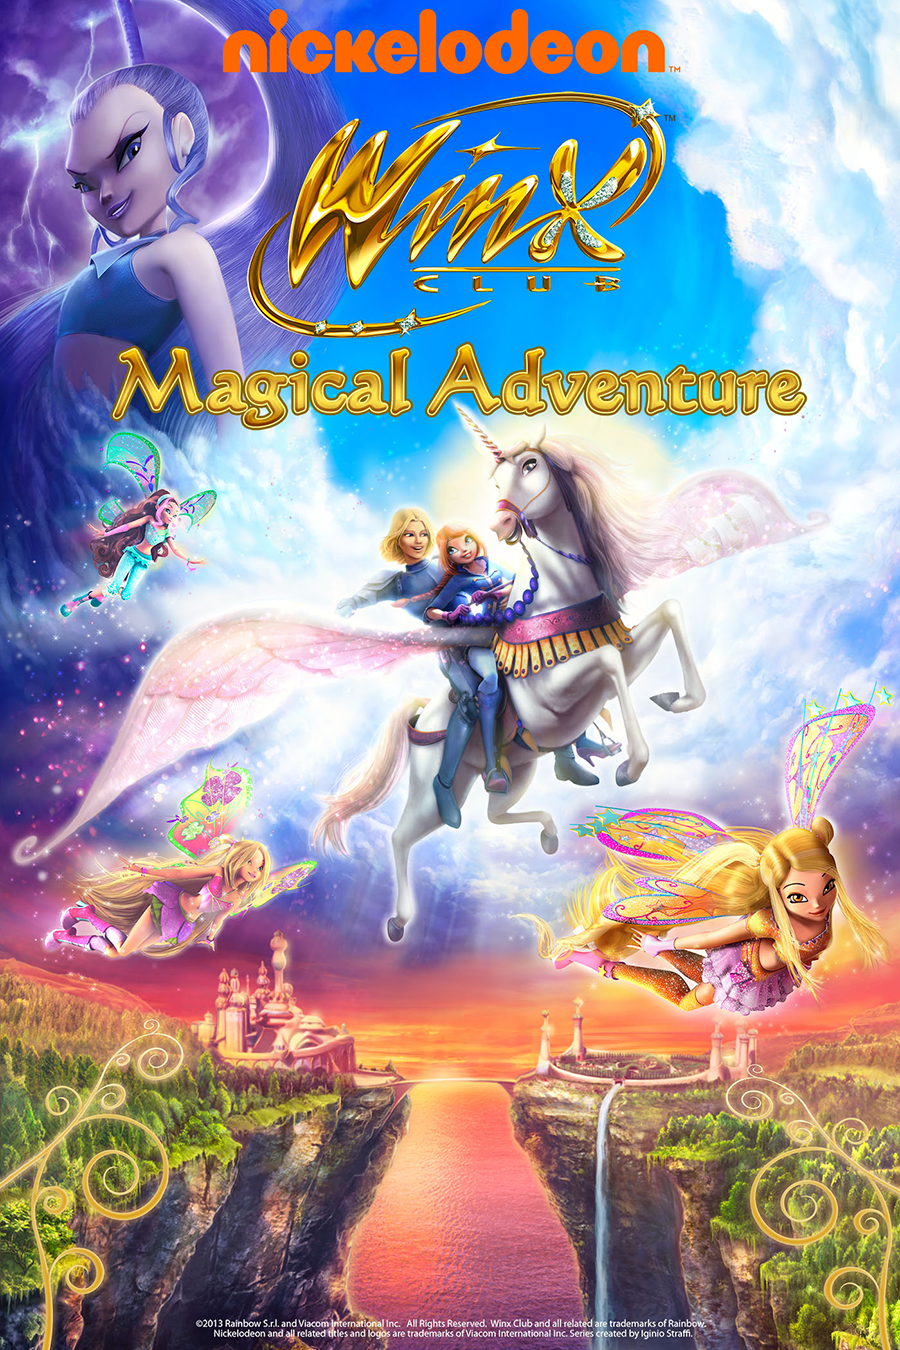 winx club magical adventure 3d on nickelodeon this summer